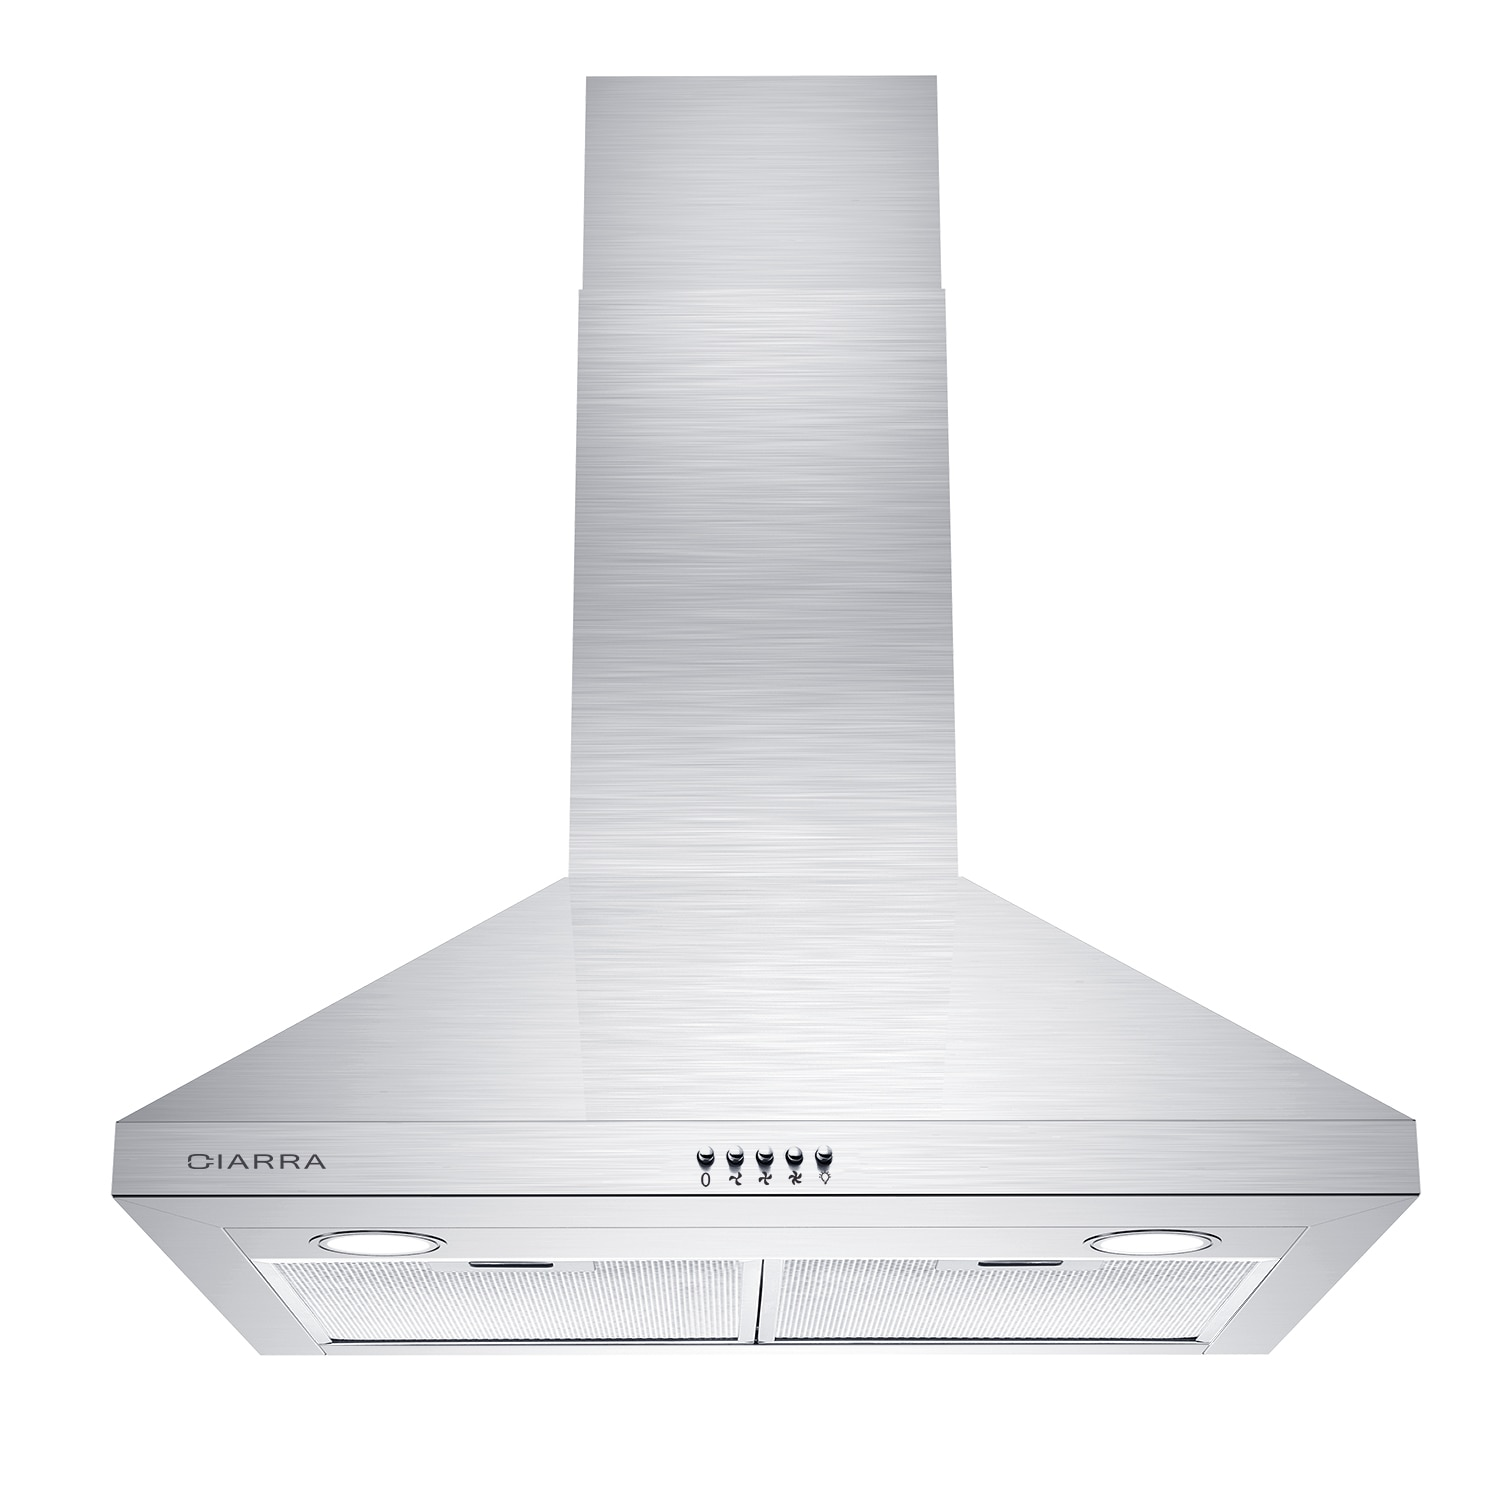 CIARRA CAS75206P 30 inch Range Hood, Wall Mounted Stove Vent, Stainless Steel Kitchen Extractor Hood with Led Lights, 450CFM